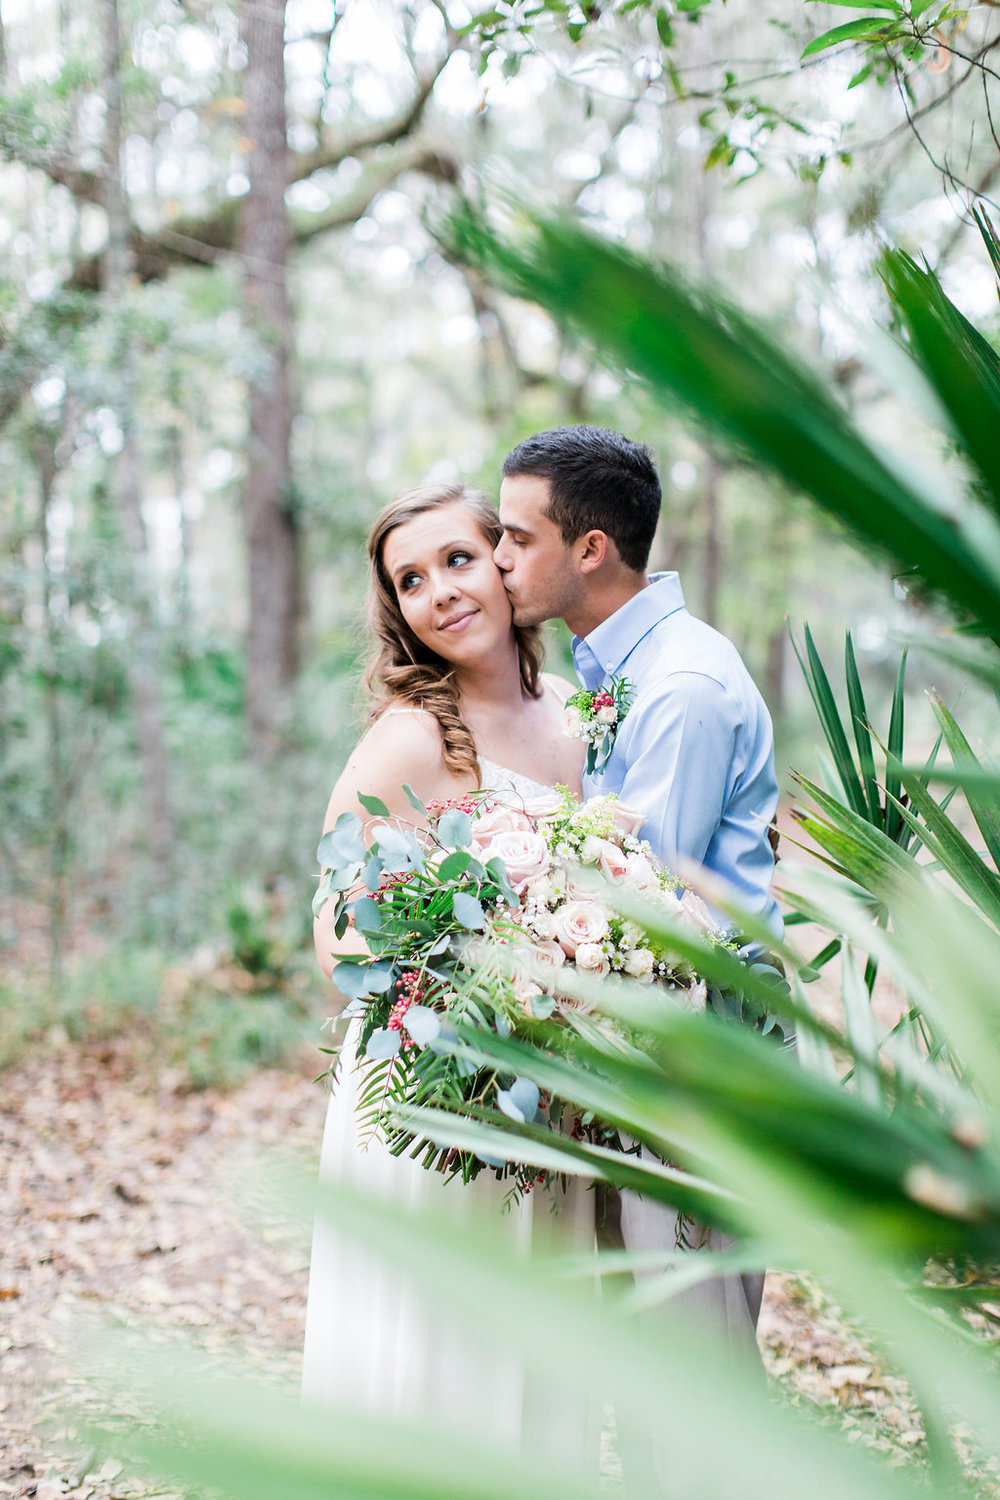 Savannah_Wedding_Photography_AptBPhotography_Elopements455.JPG